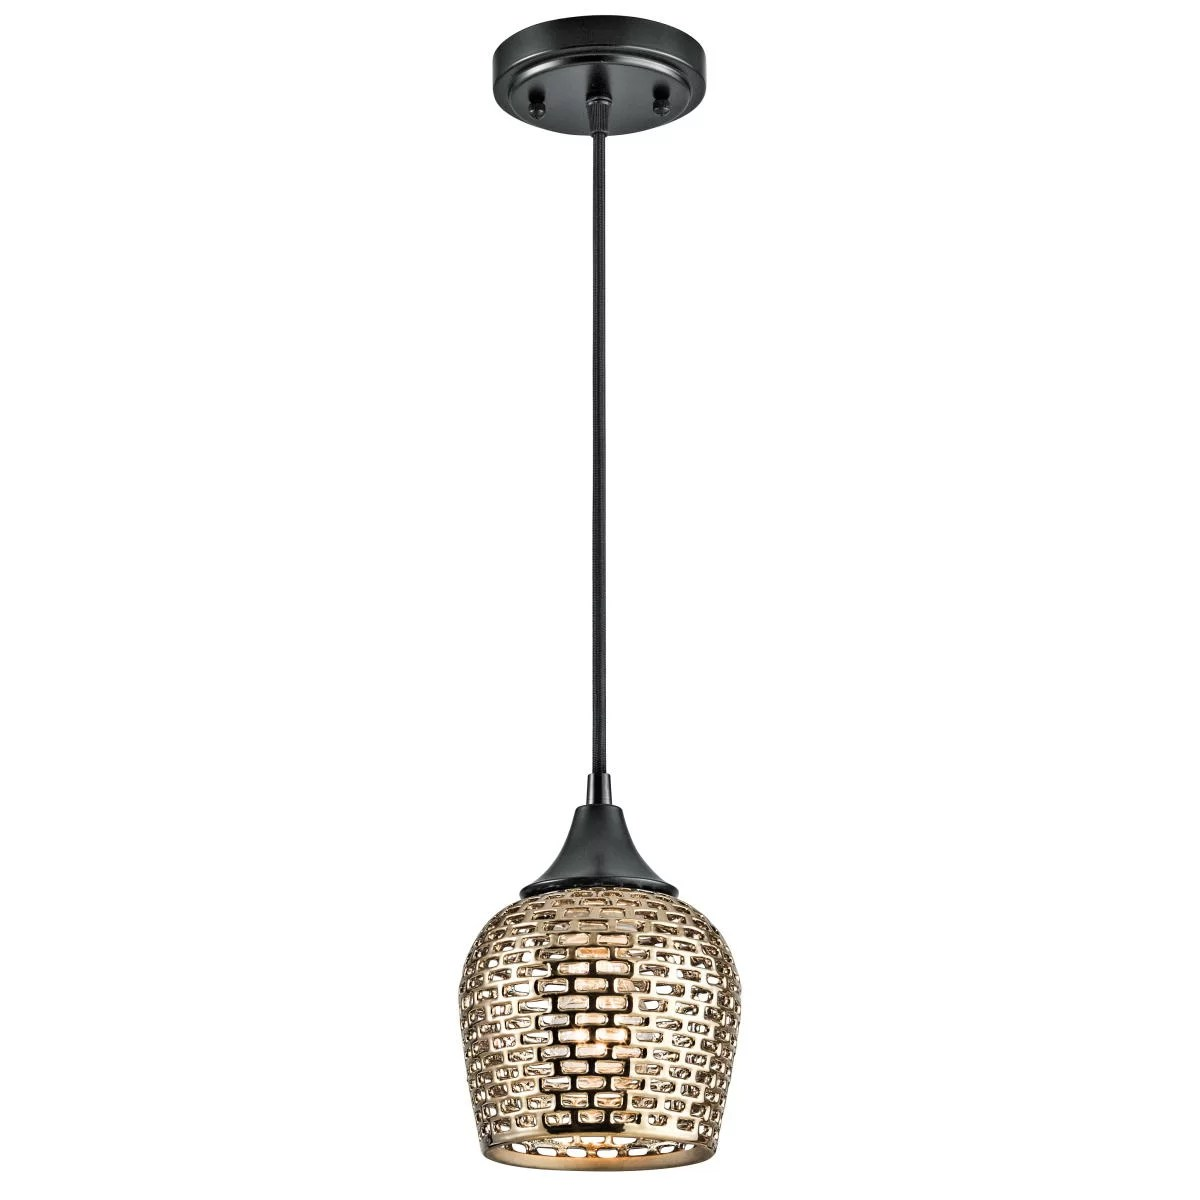 Kichler Annata 1 Light Mini Pendant  Reviews  Wayfair